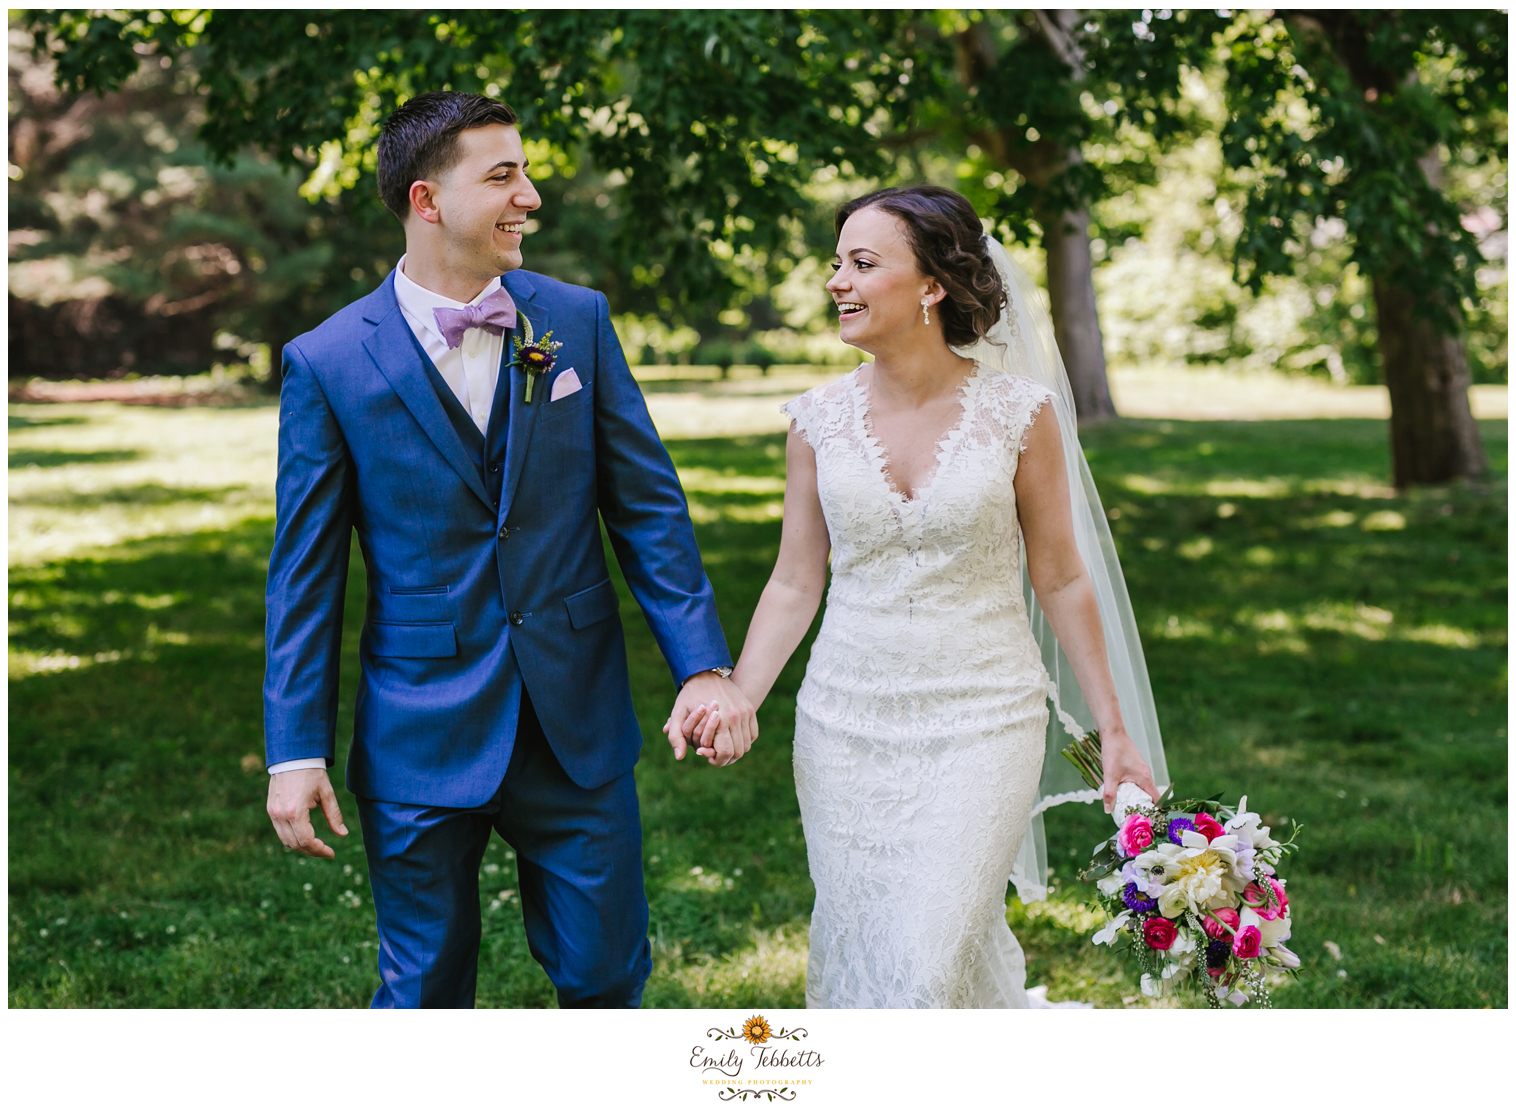 Emily Tebbetts Photography - webb barn wedding wethersfield ct connecticut rustic chic wedding first look fathers day emotional -2.jpg